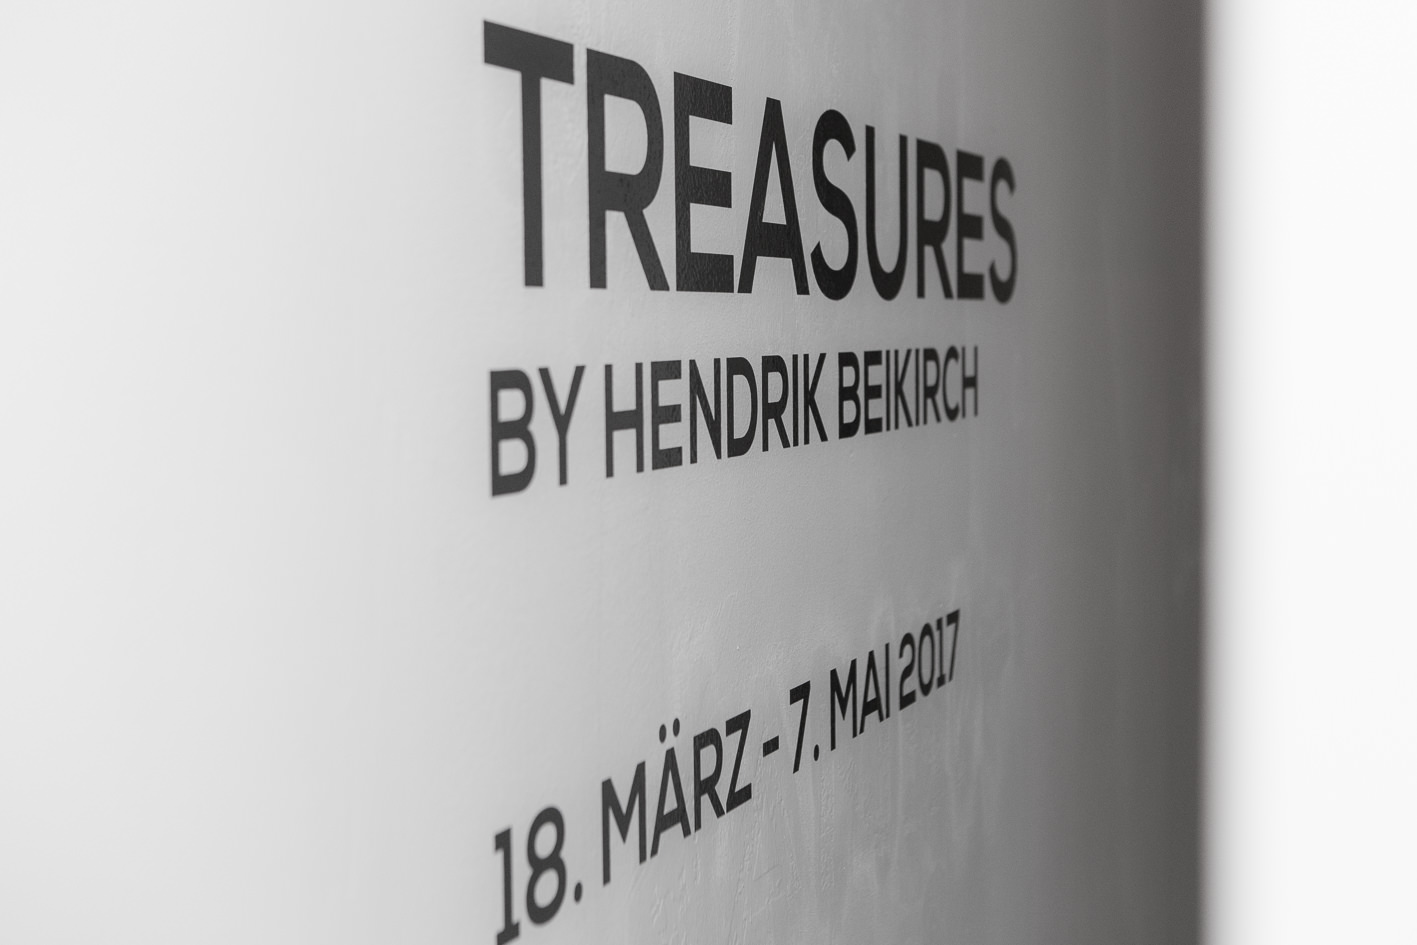 23-hendrik-beikirch-treasures-galerie-droste-doze-collective-opening